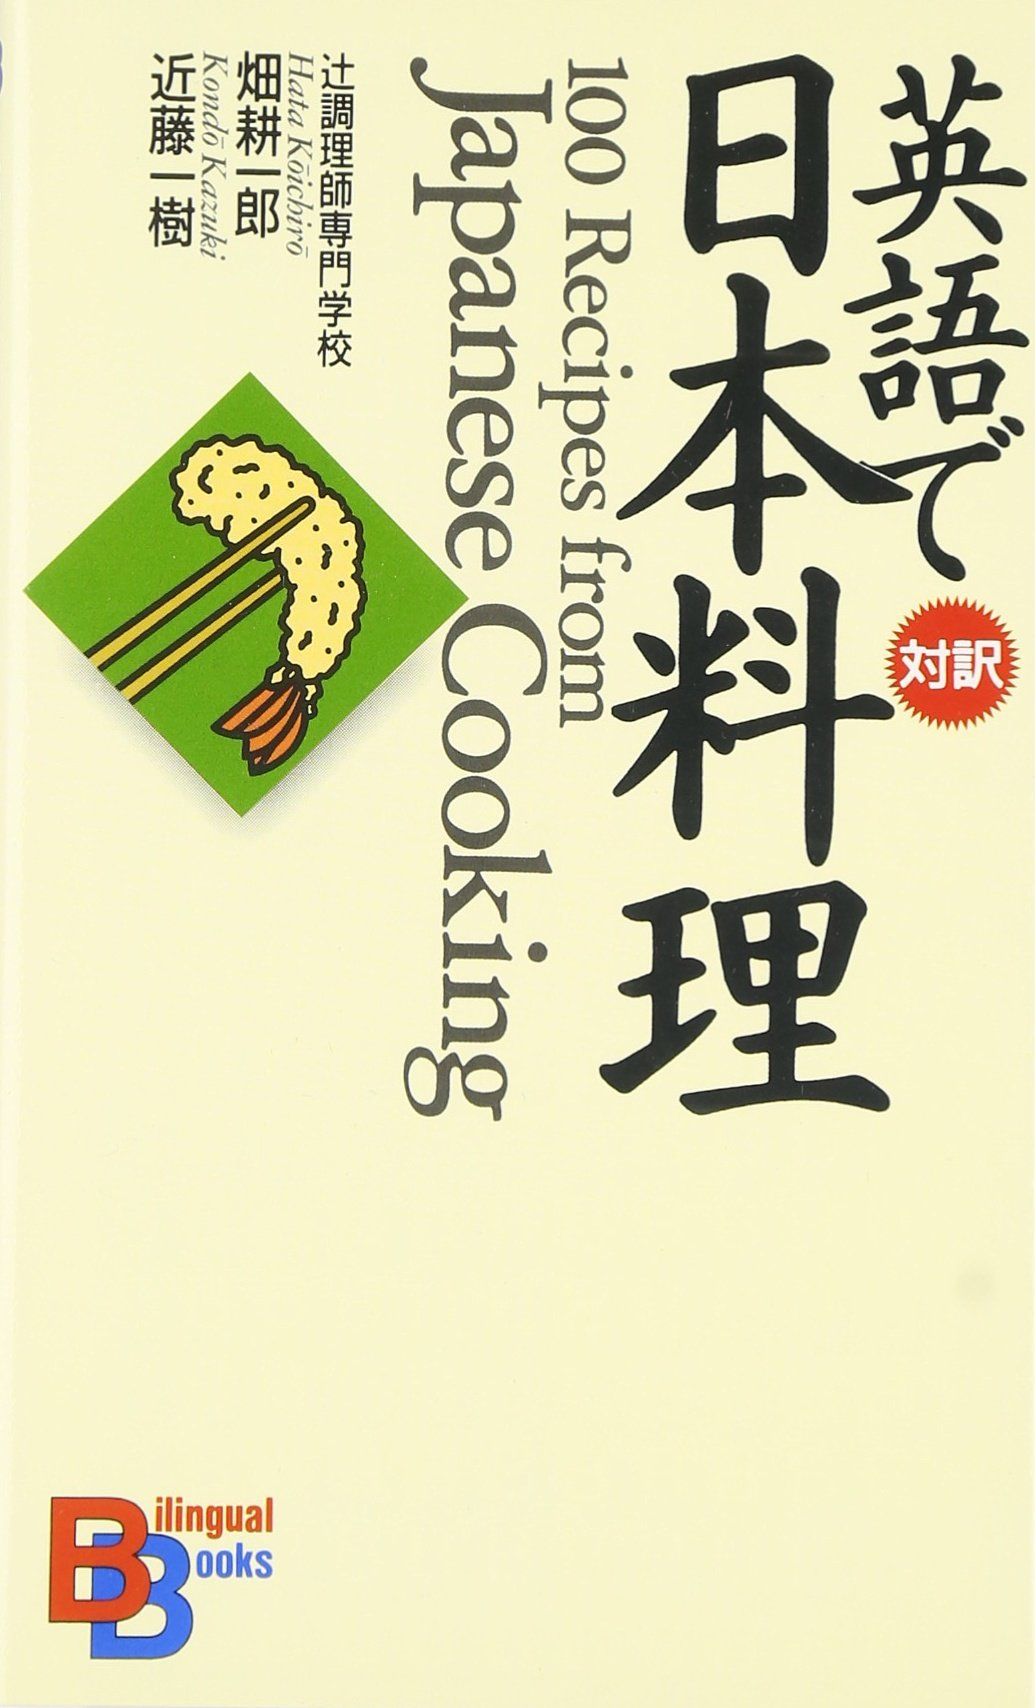 100 Recipes from Japanese Cooking (Kodansha Bilingual Books) (English and Japanese Edition) by Kodansha International Ltd